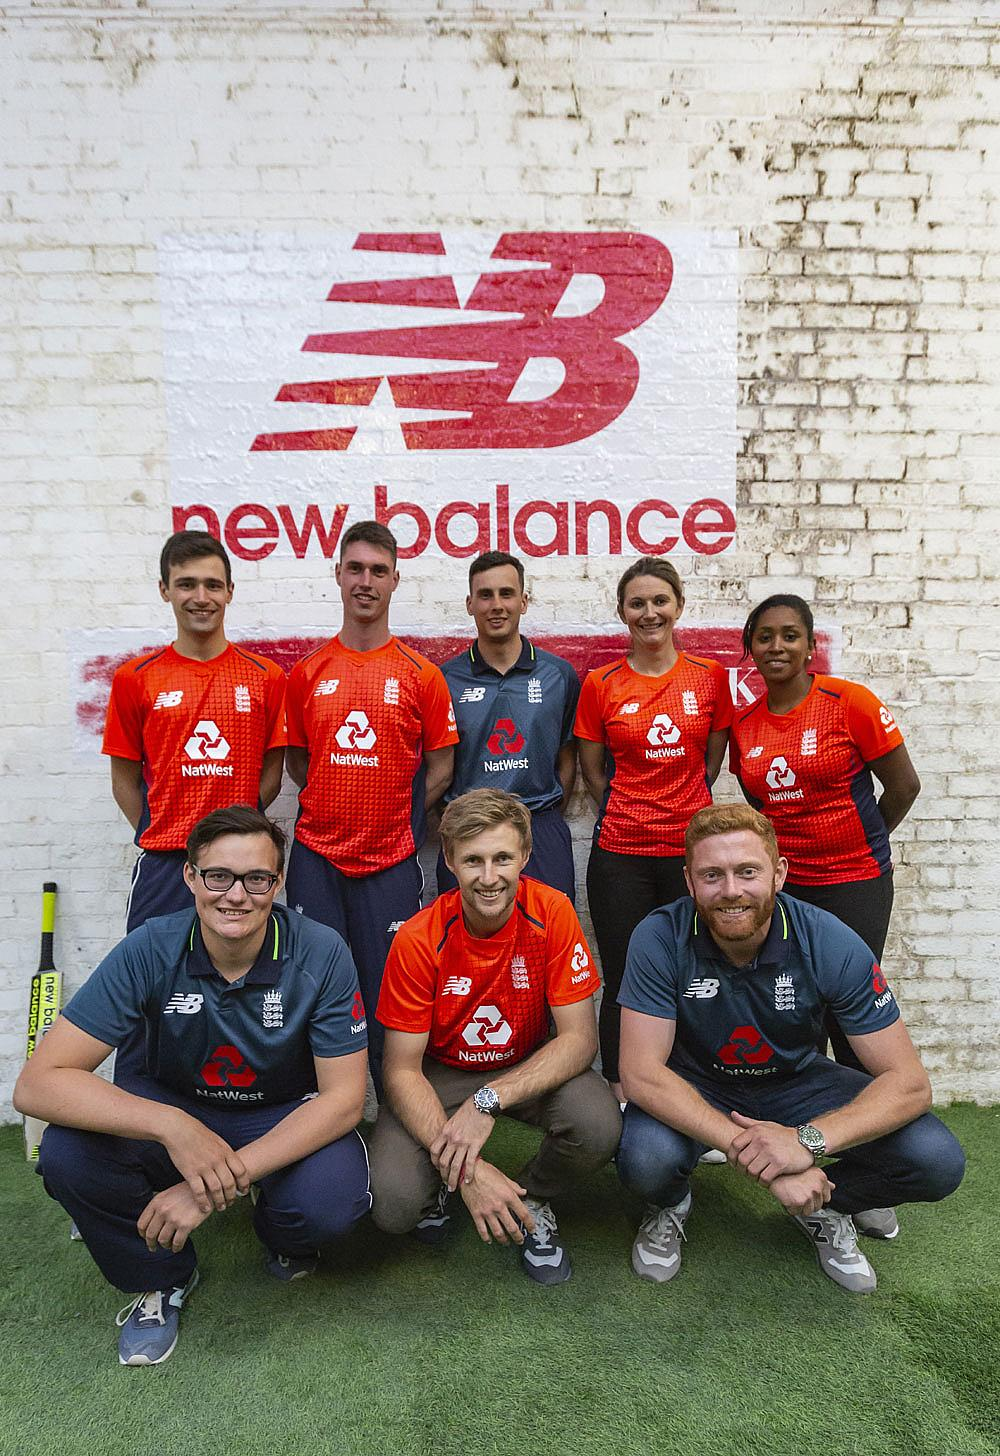 bfc8e42060f New Balance unveils official England Cricket kit with Make Your Mark  campaign launch